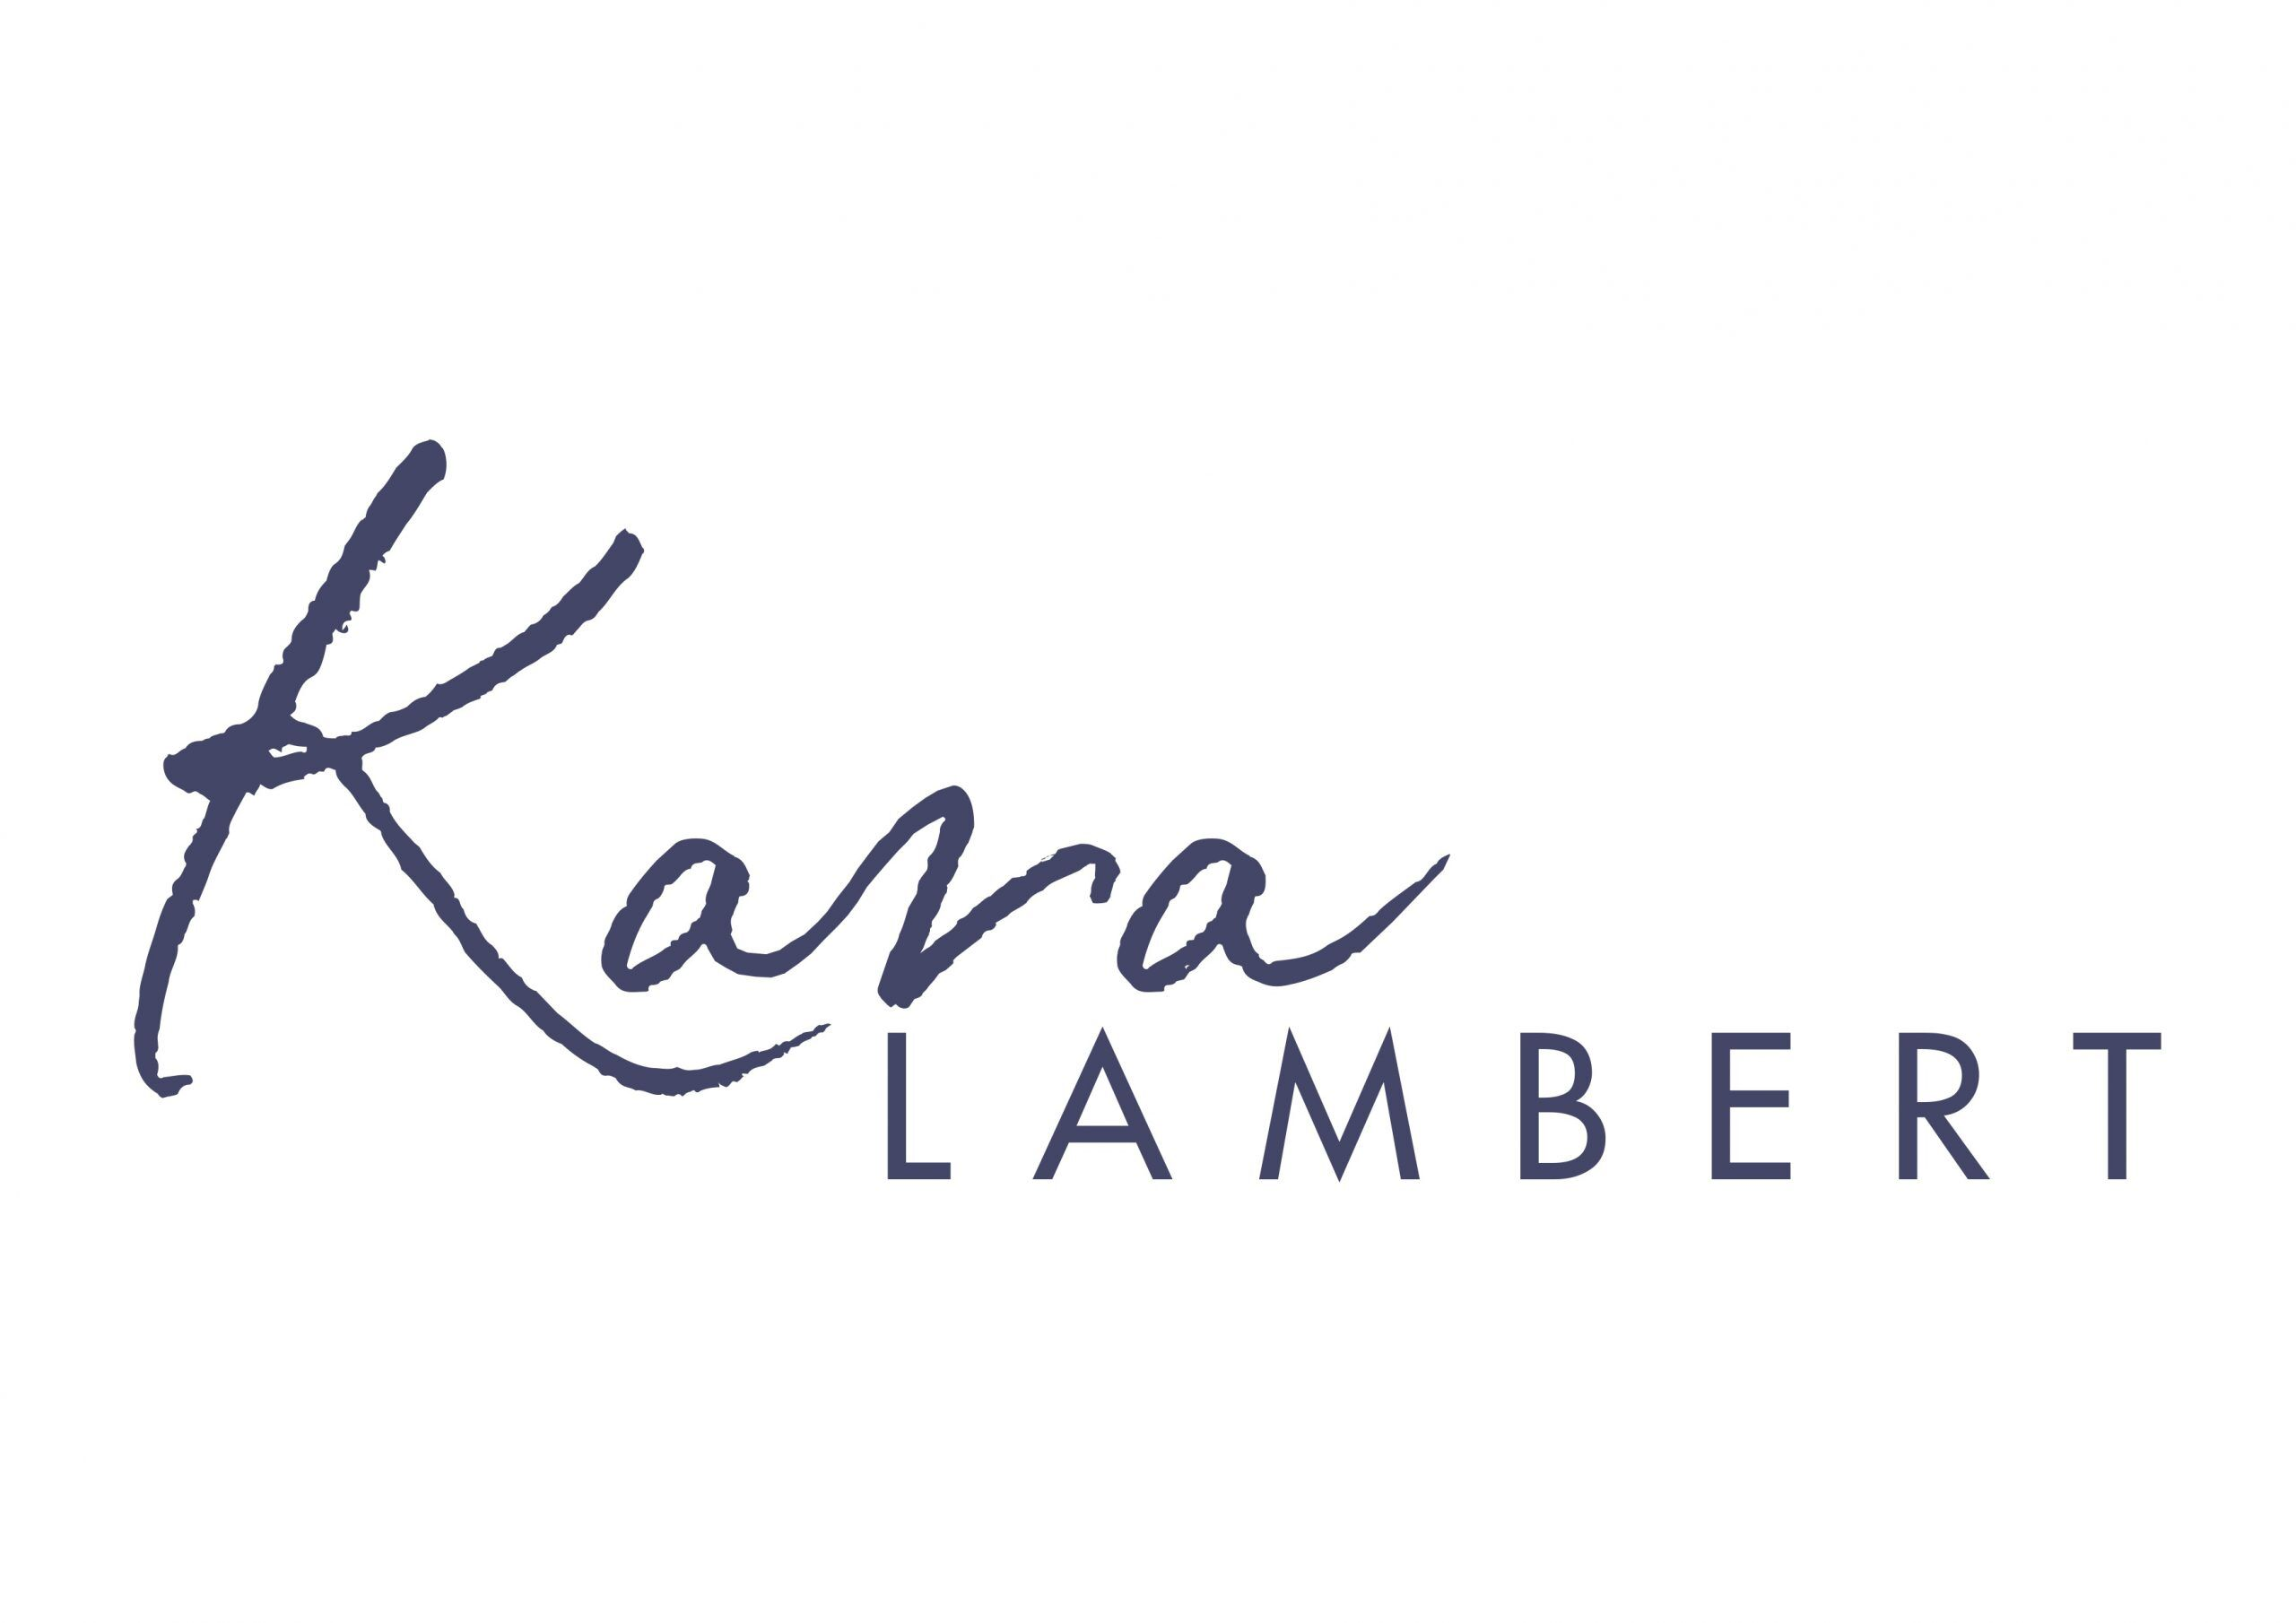 Small business consultant, Kara Lambert is insightful and expert.